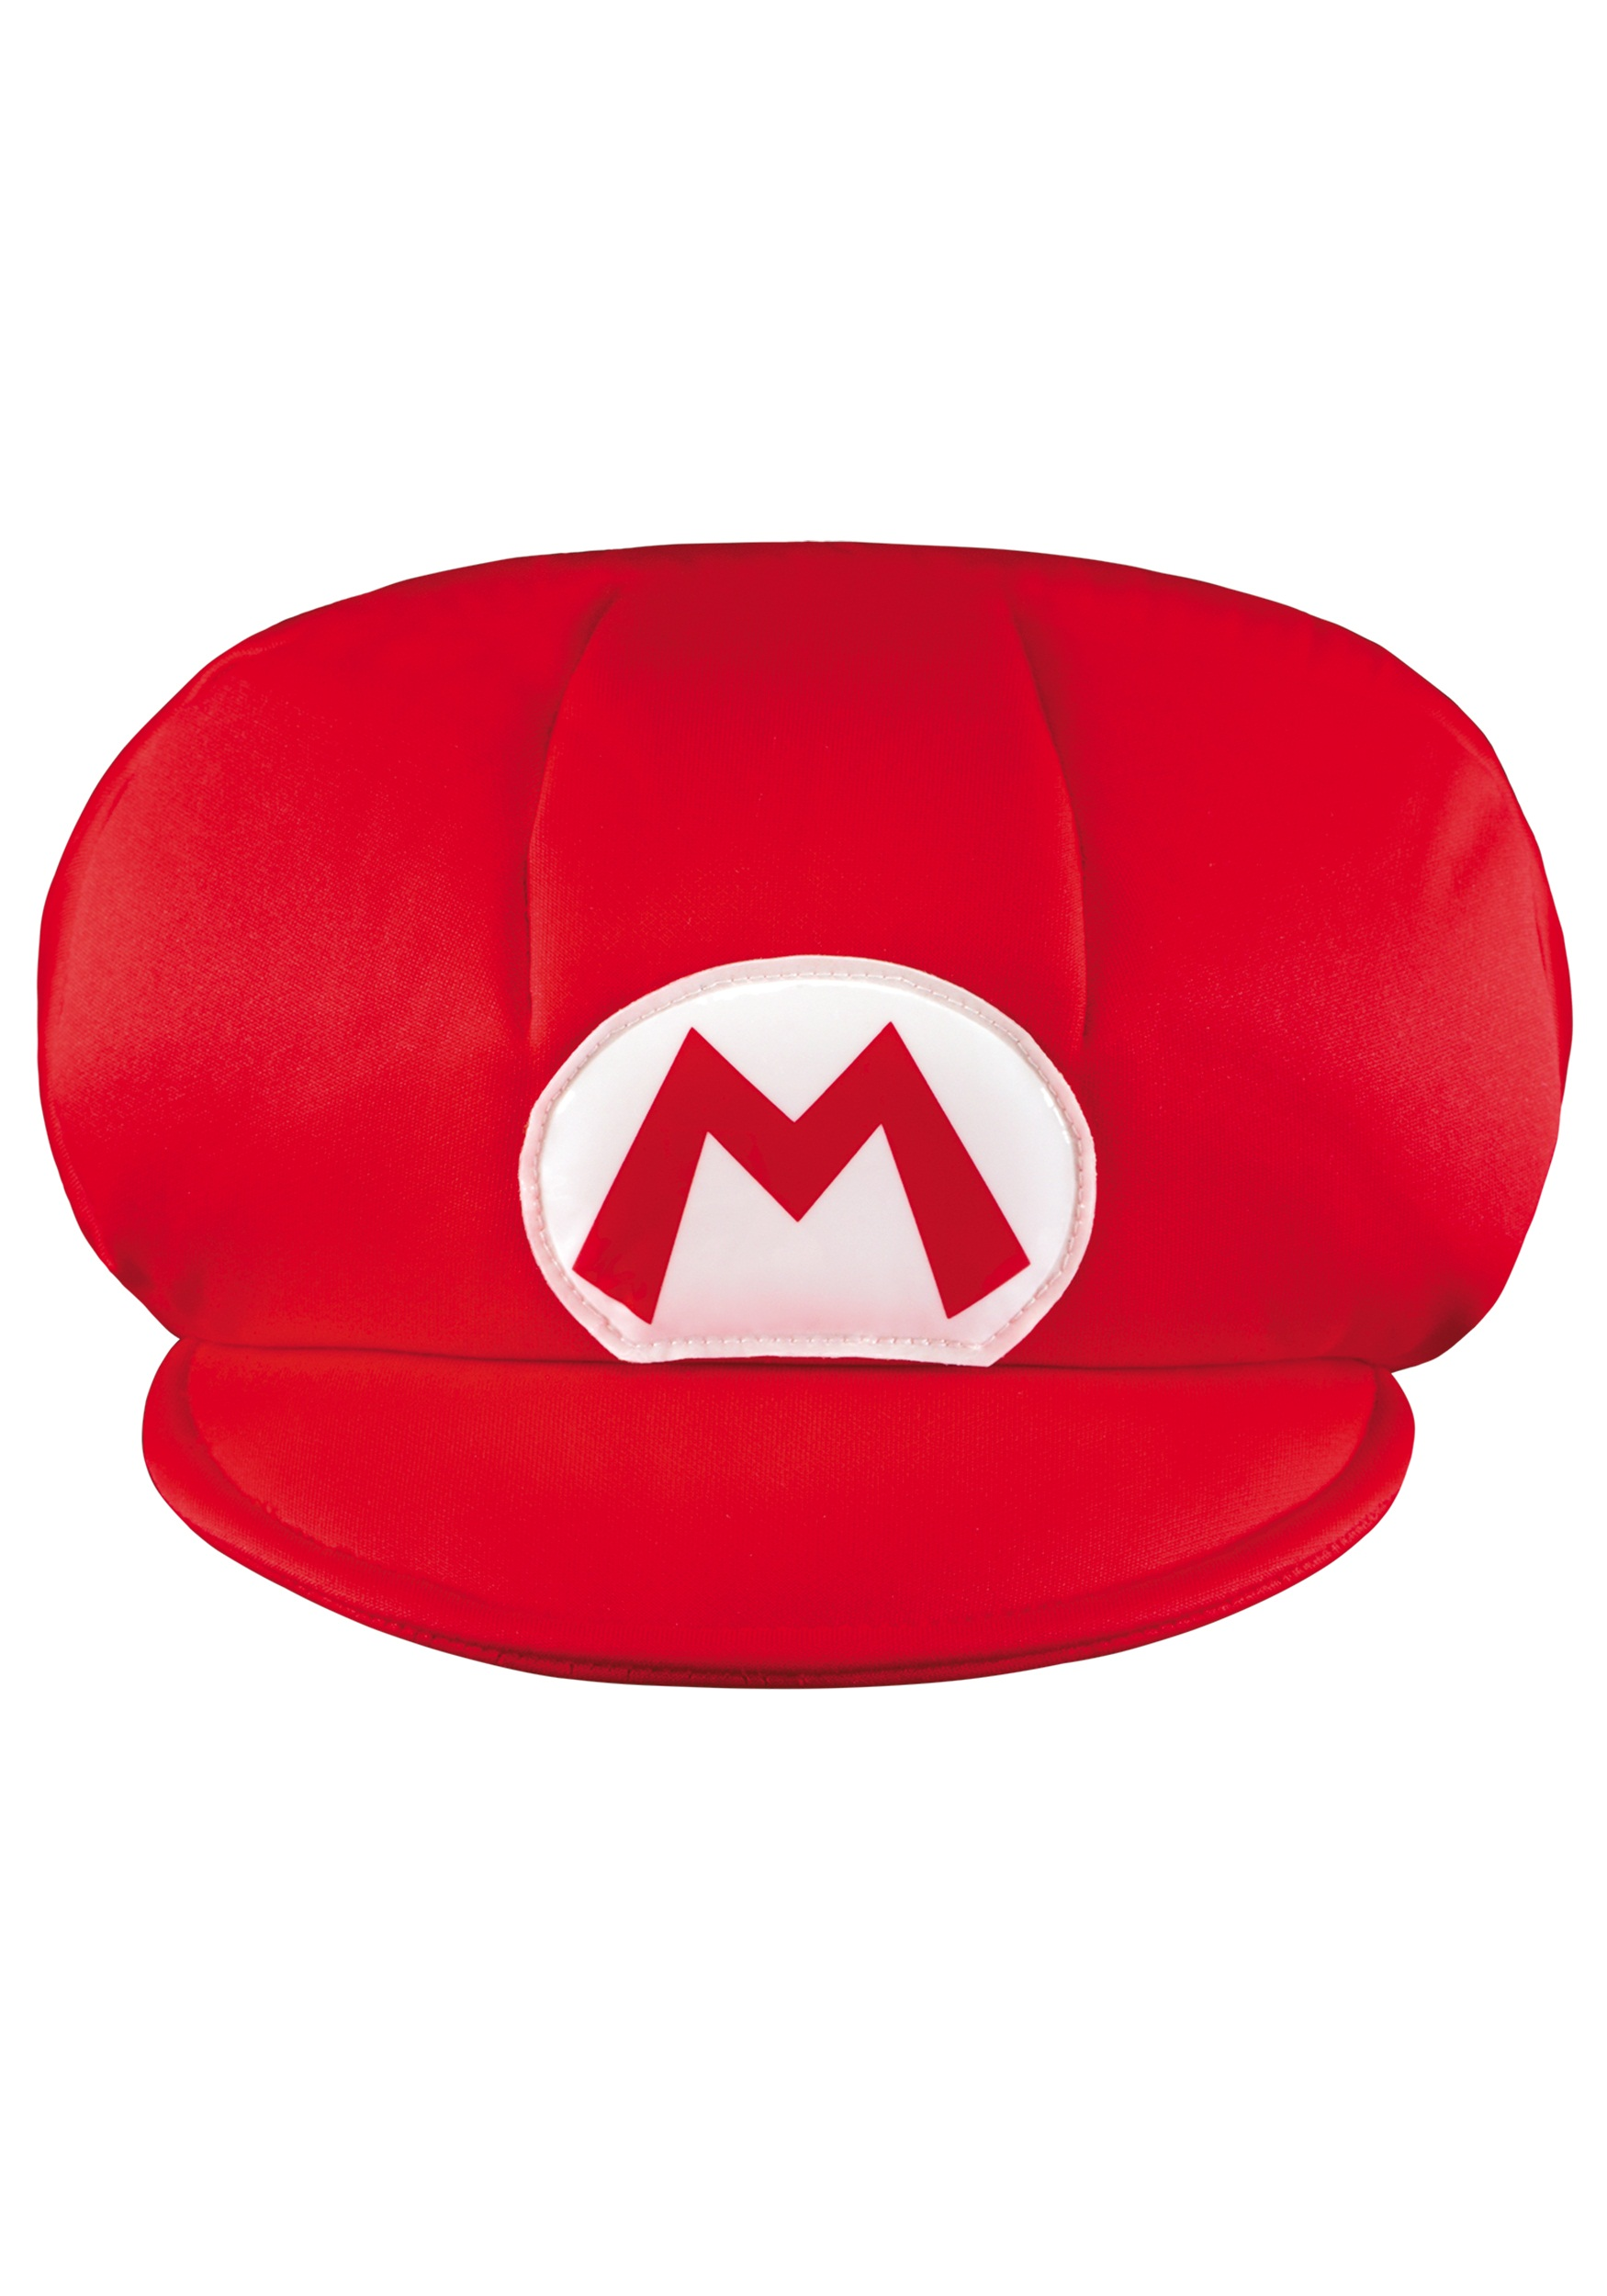 Mario Hat Clipart 20 Free Cliparts Download Images On